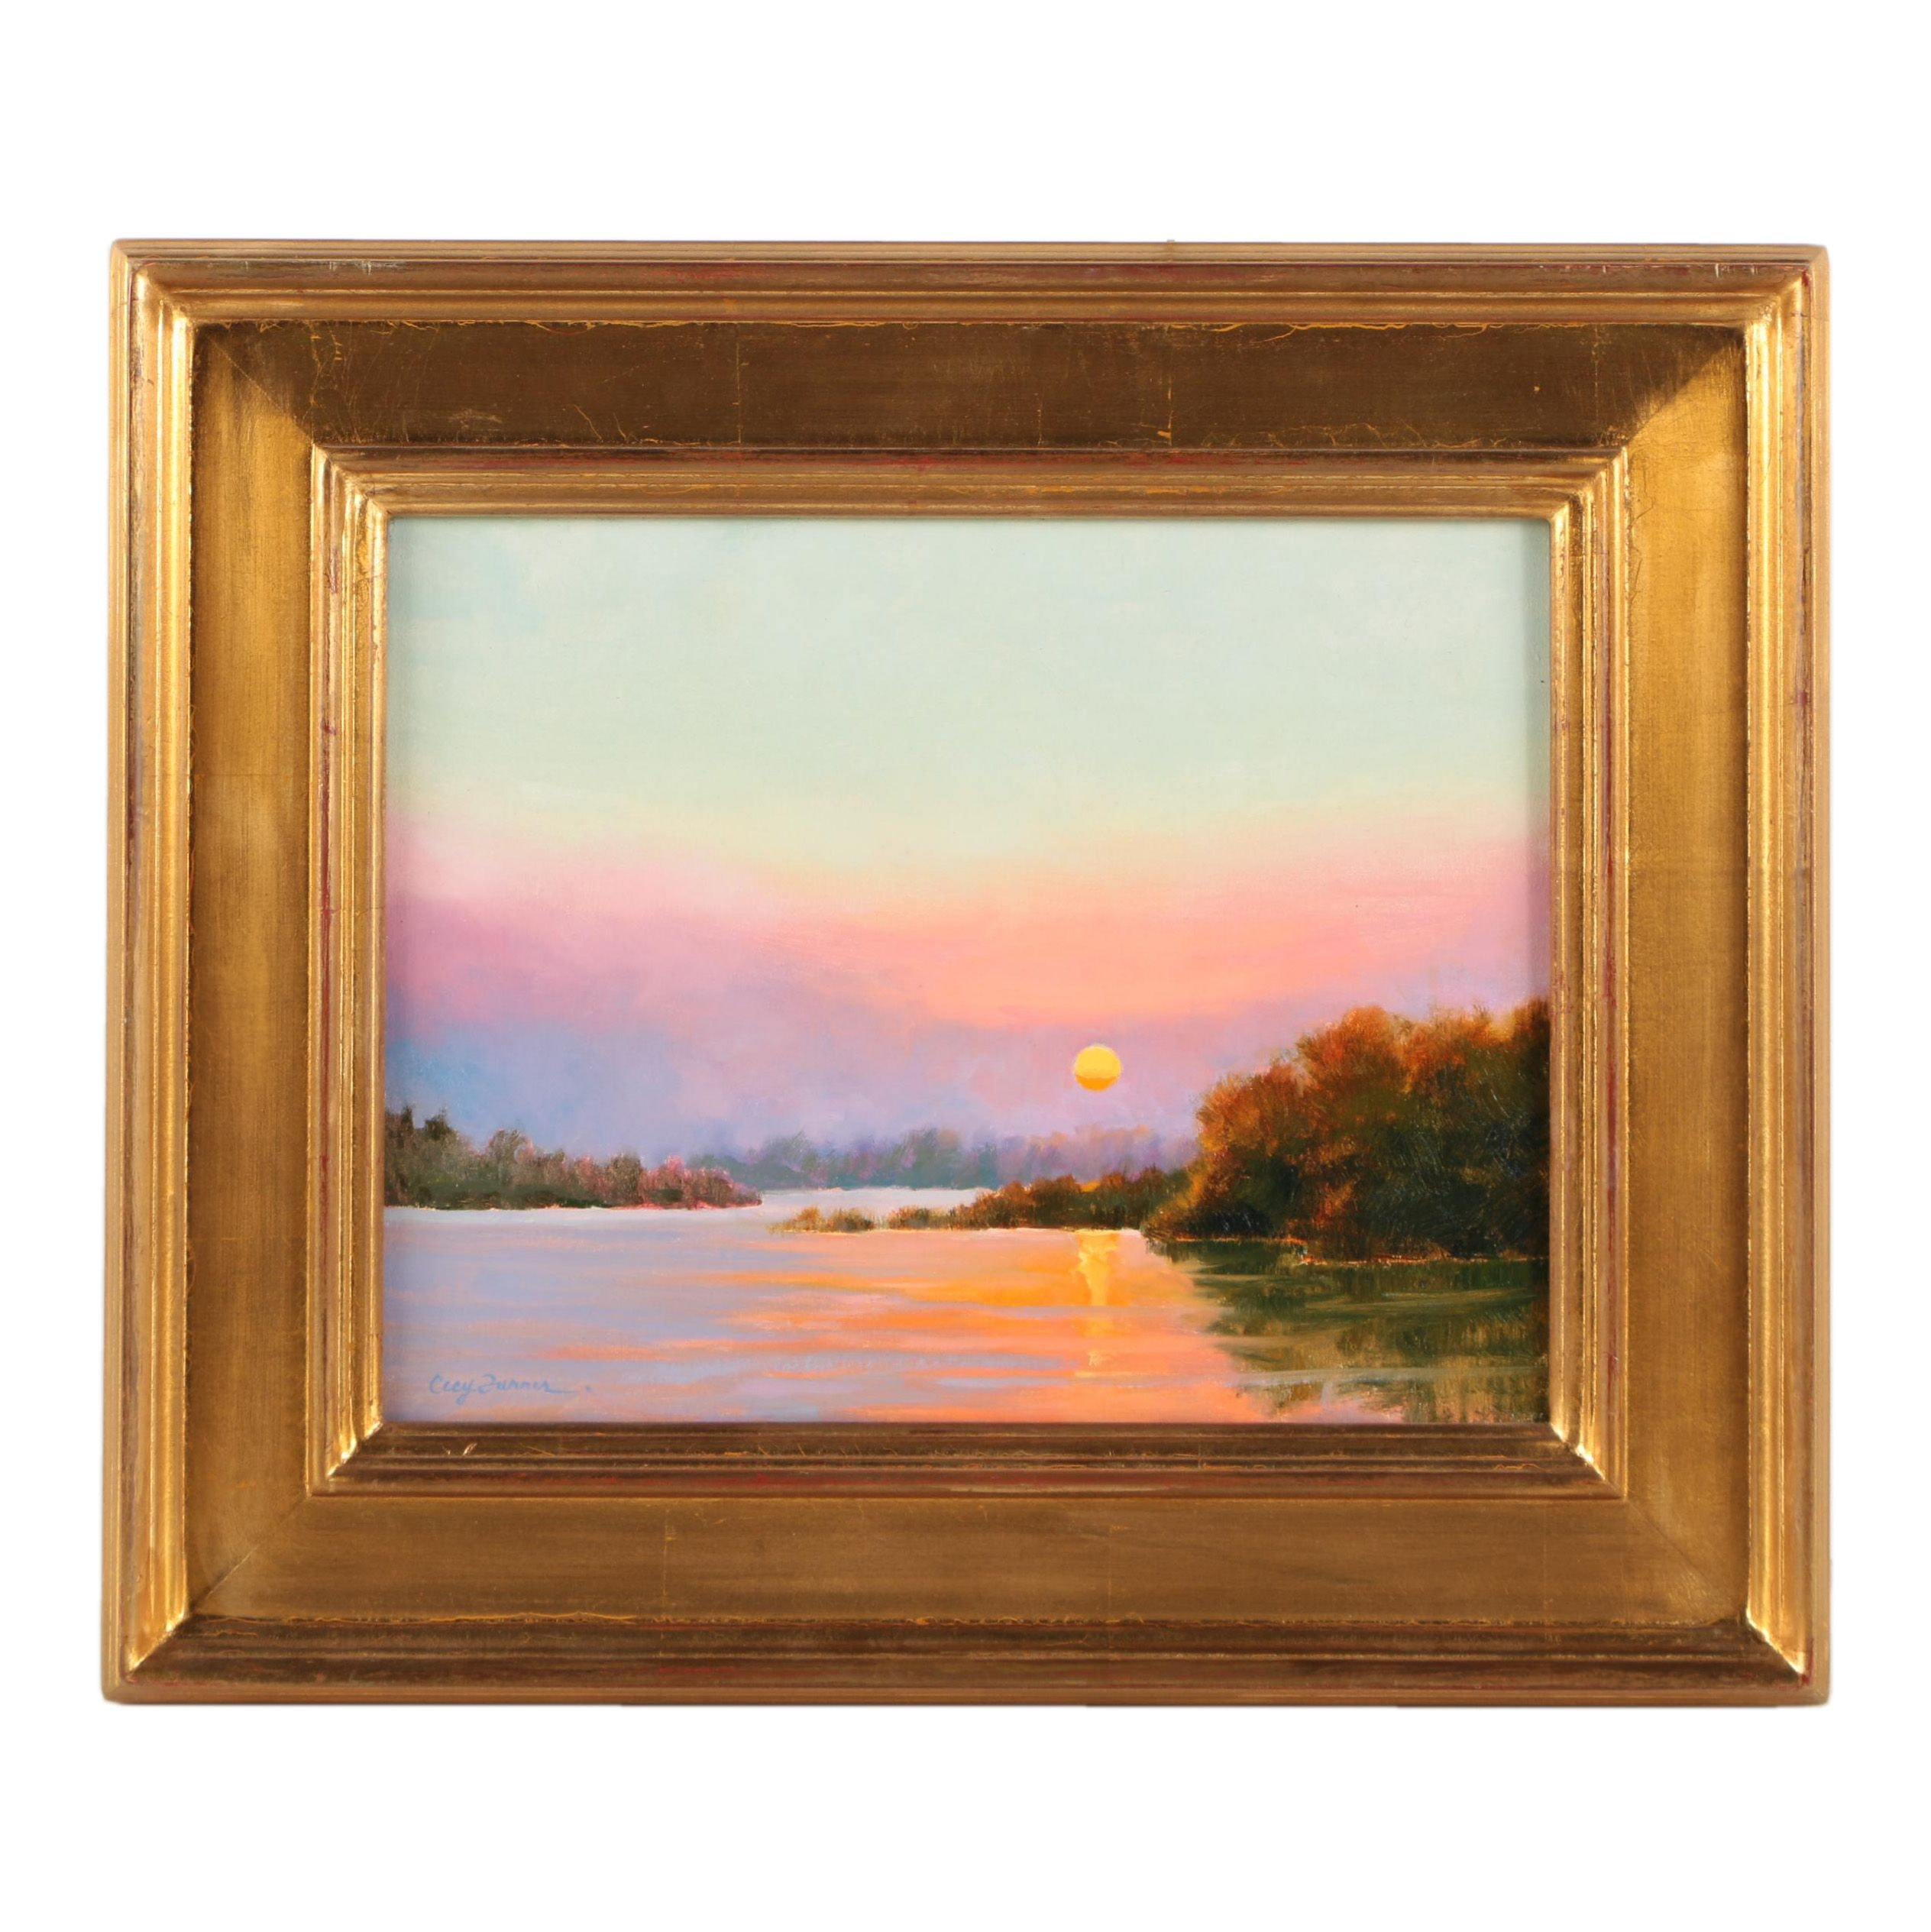 Cecy Turner Oil Painting on Canvas of Sunset